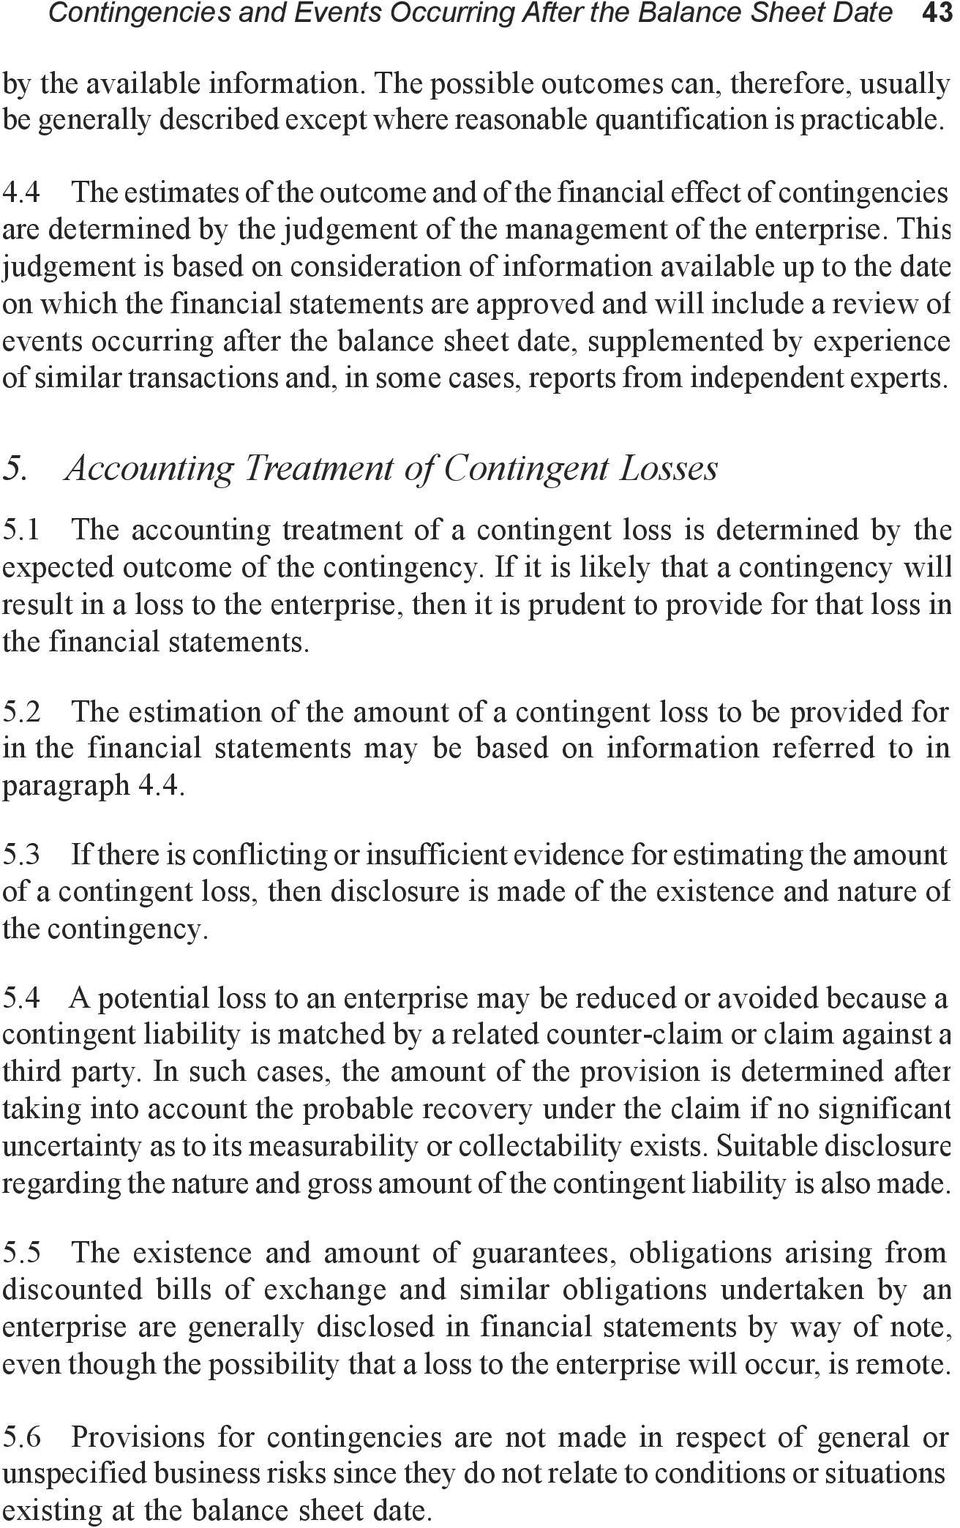 4 The estimates of the outcomeand of the financial effect of contingencies are determined by the judgement of the management of the enterprise.